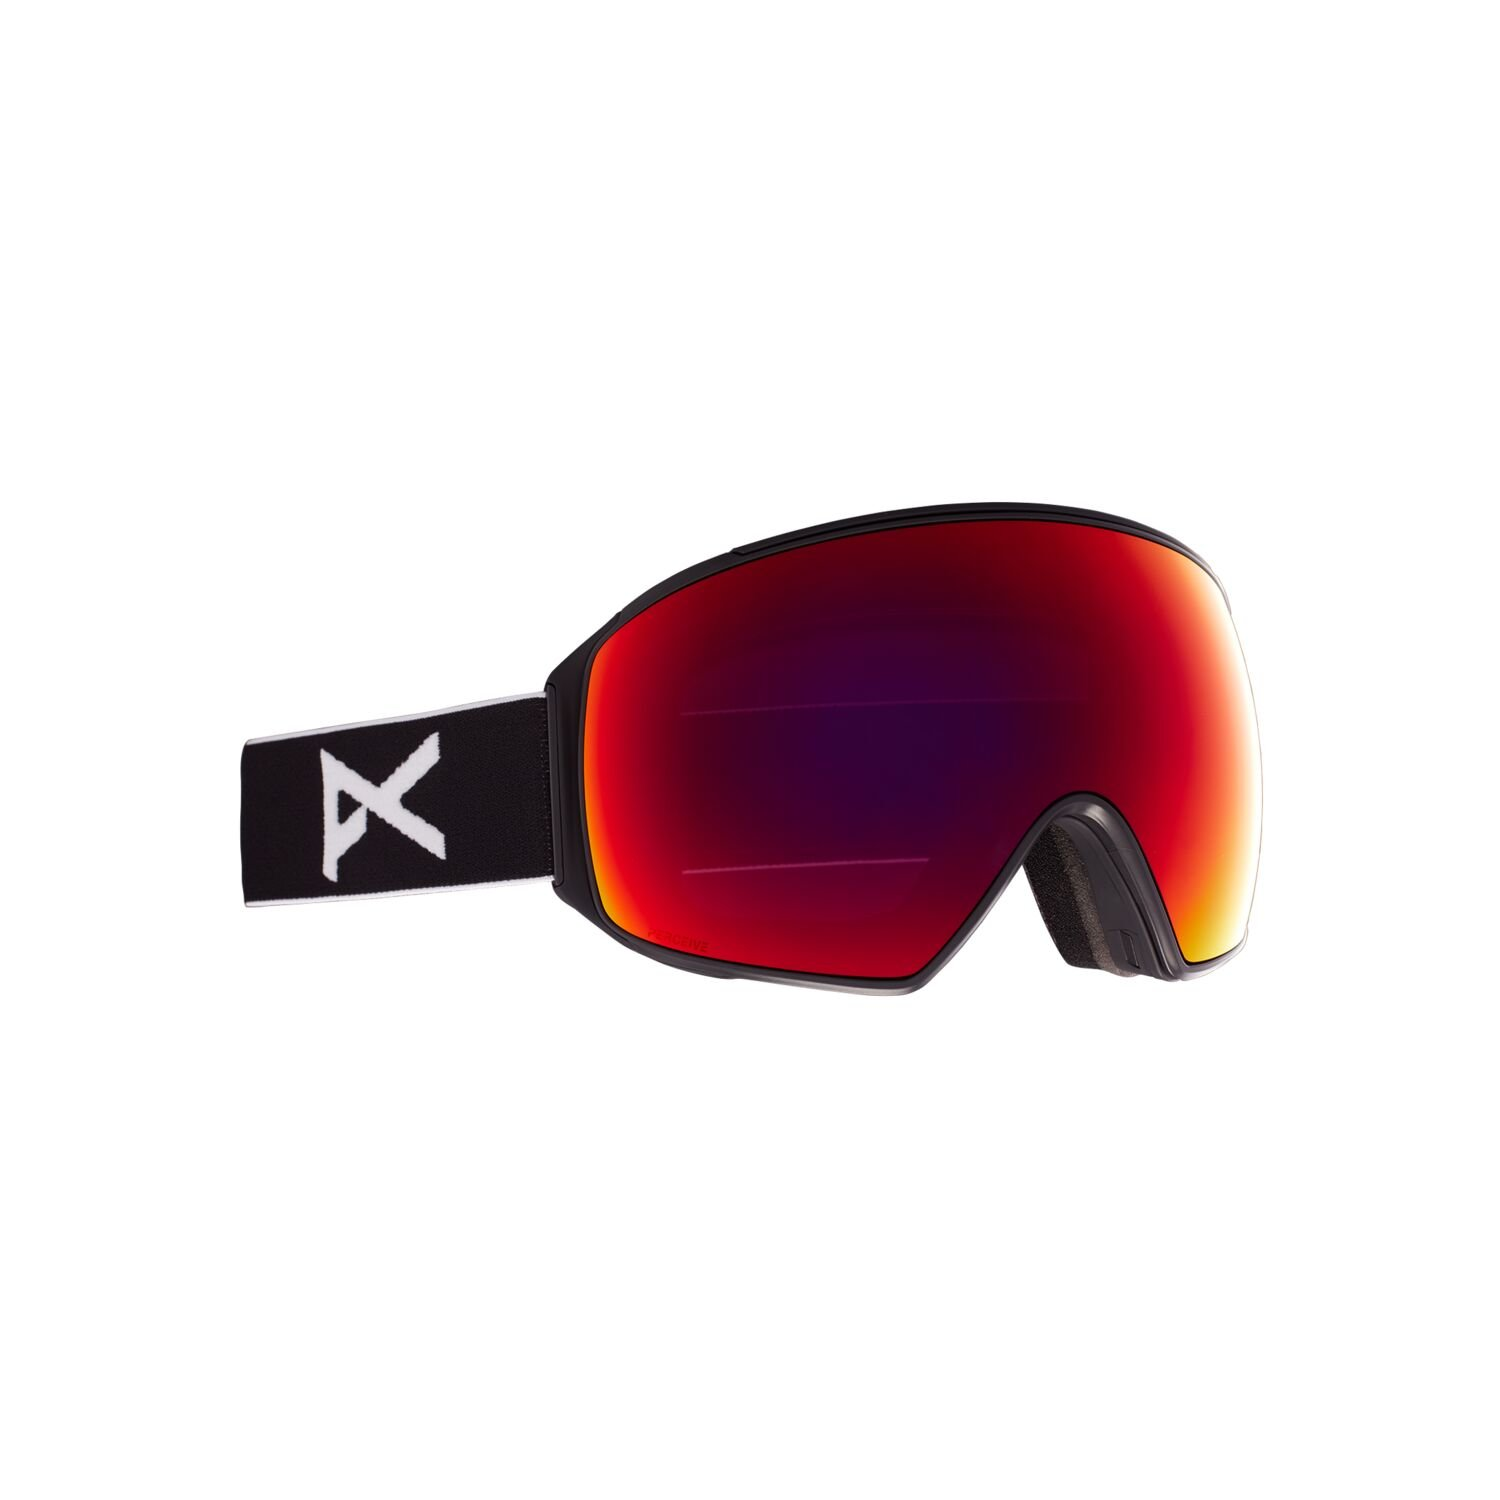 Anon M4 Toric Snowboard Goggle (Multiple Color Options)